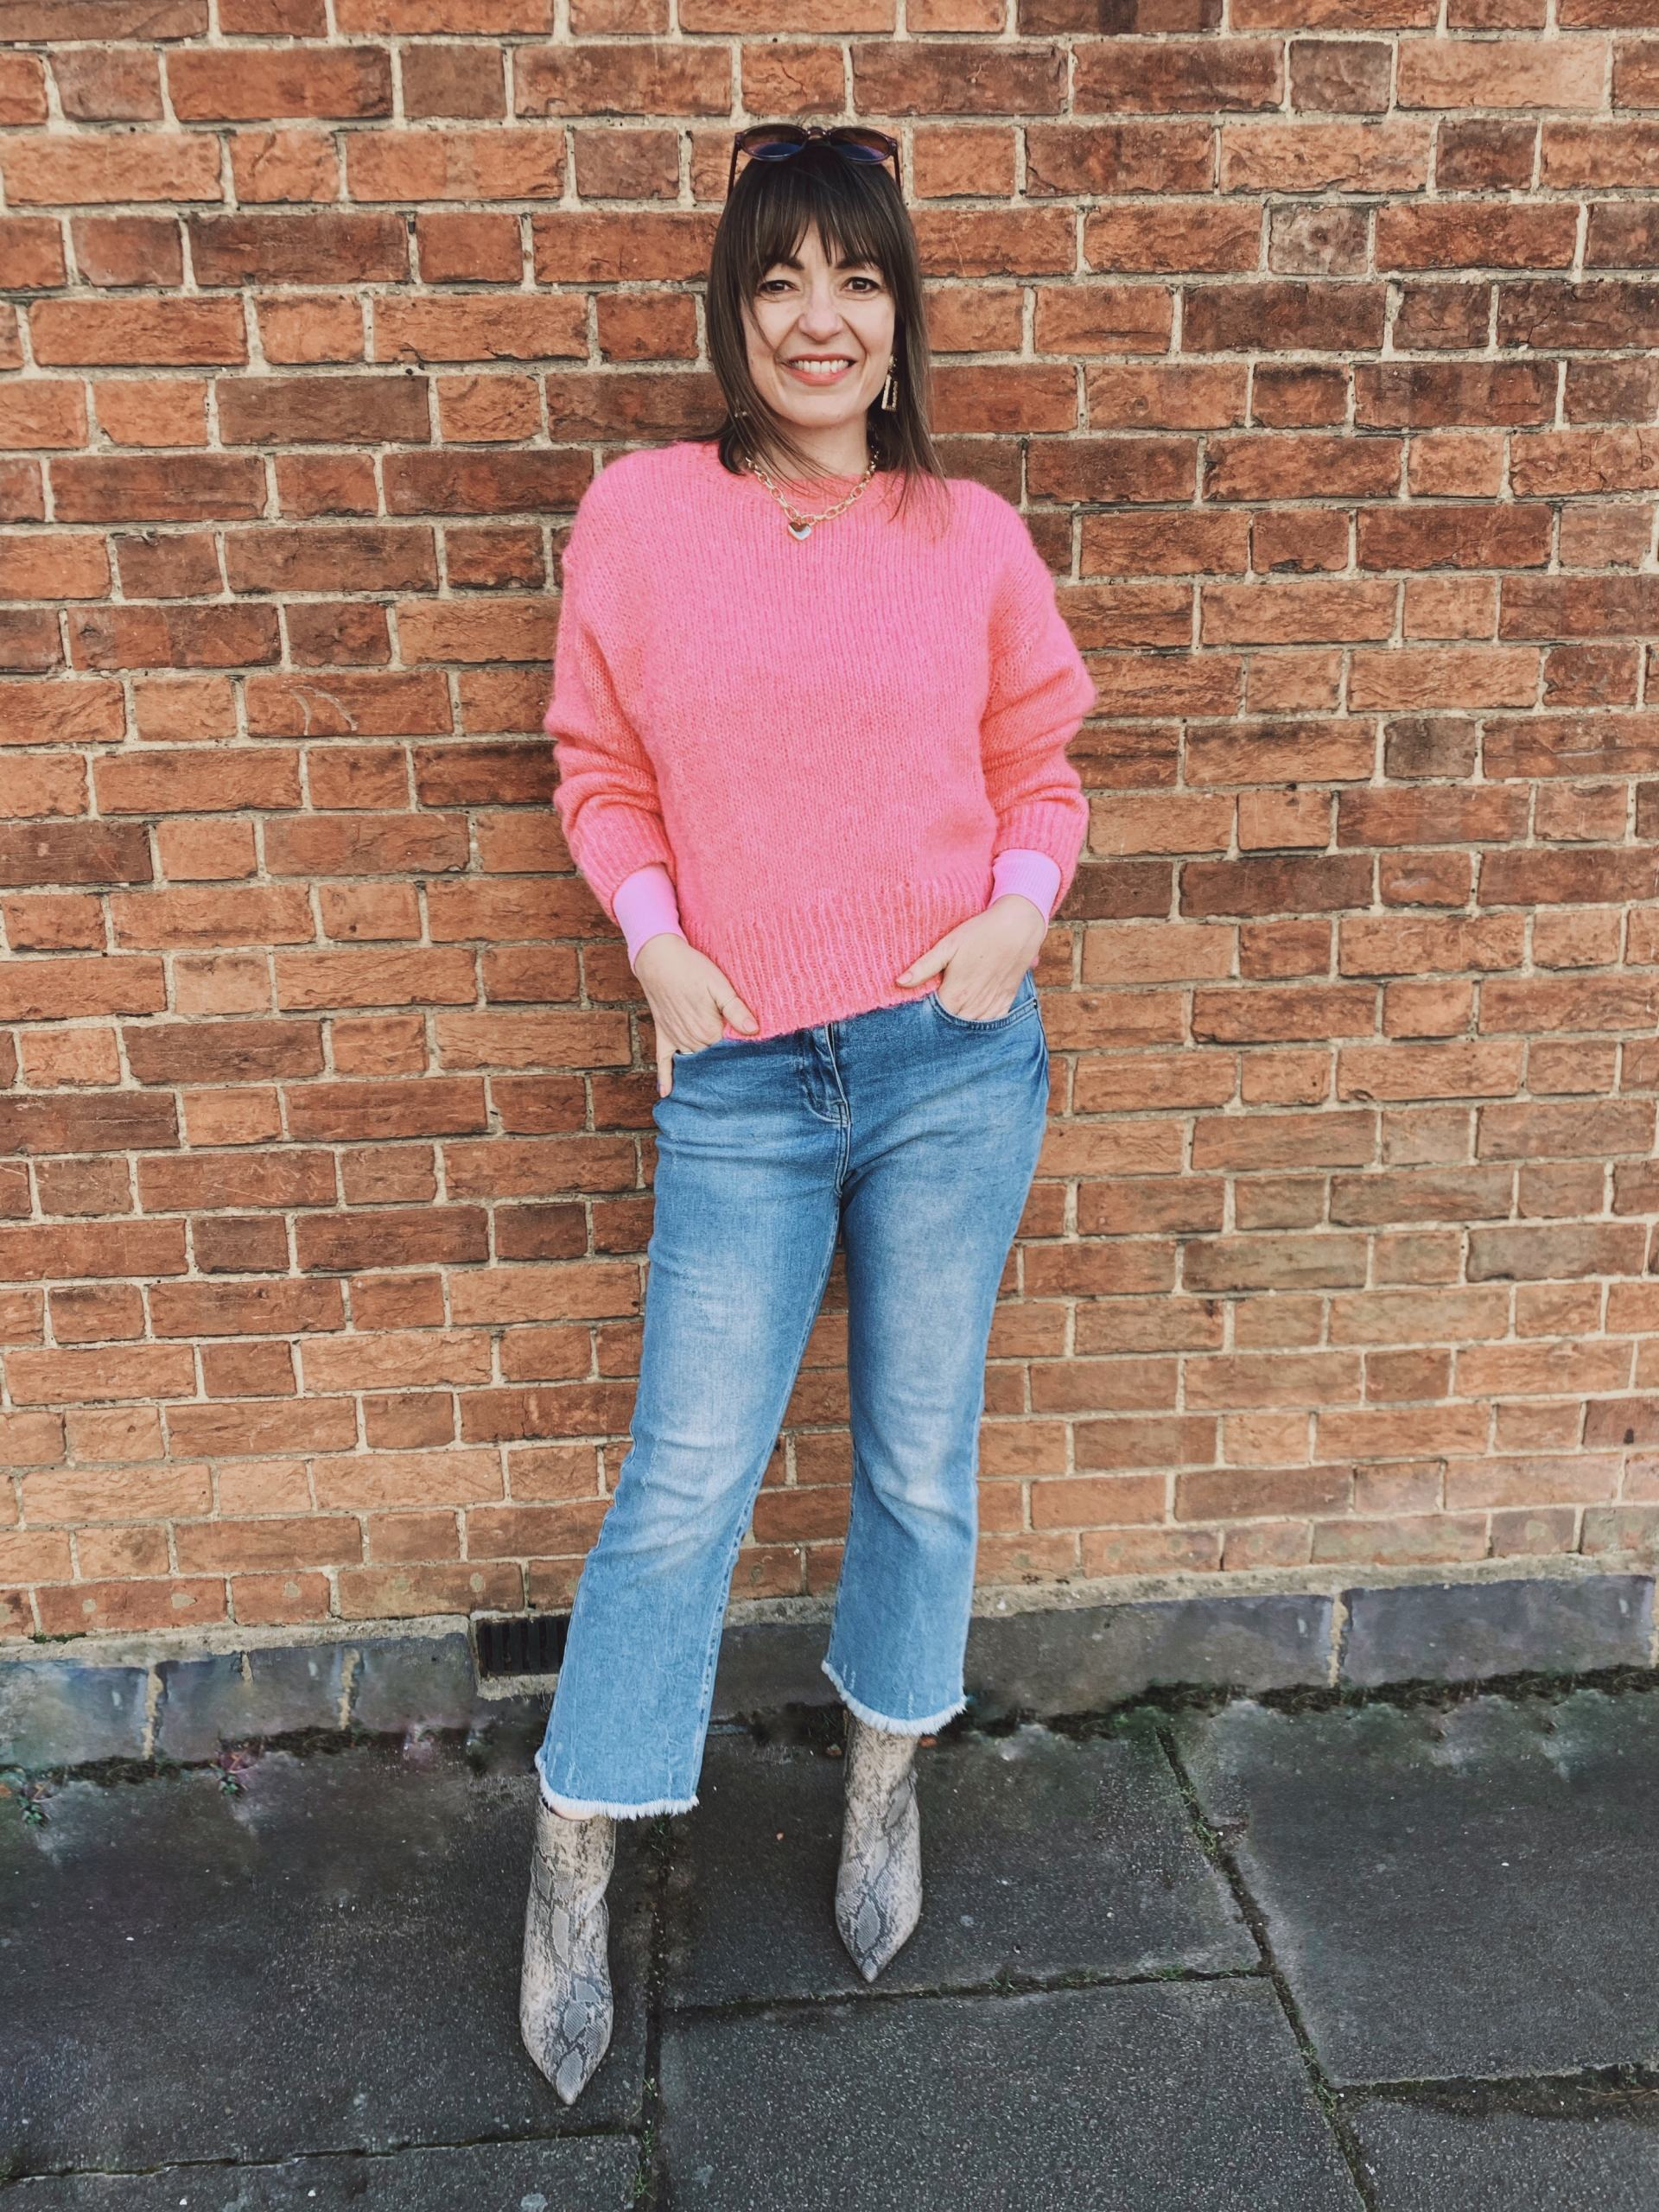 Pink jumper with jeans and skaeskin boots